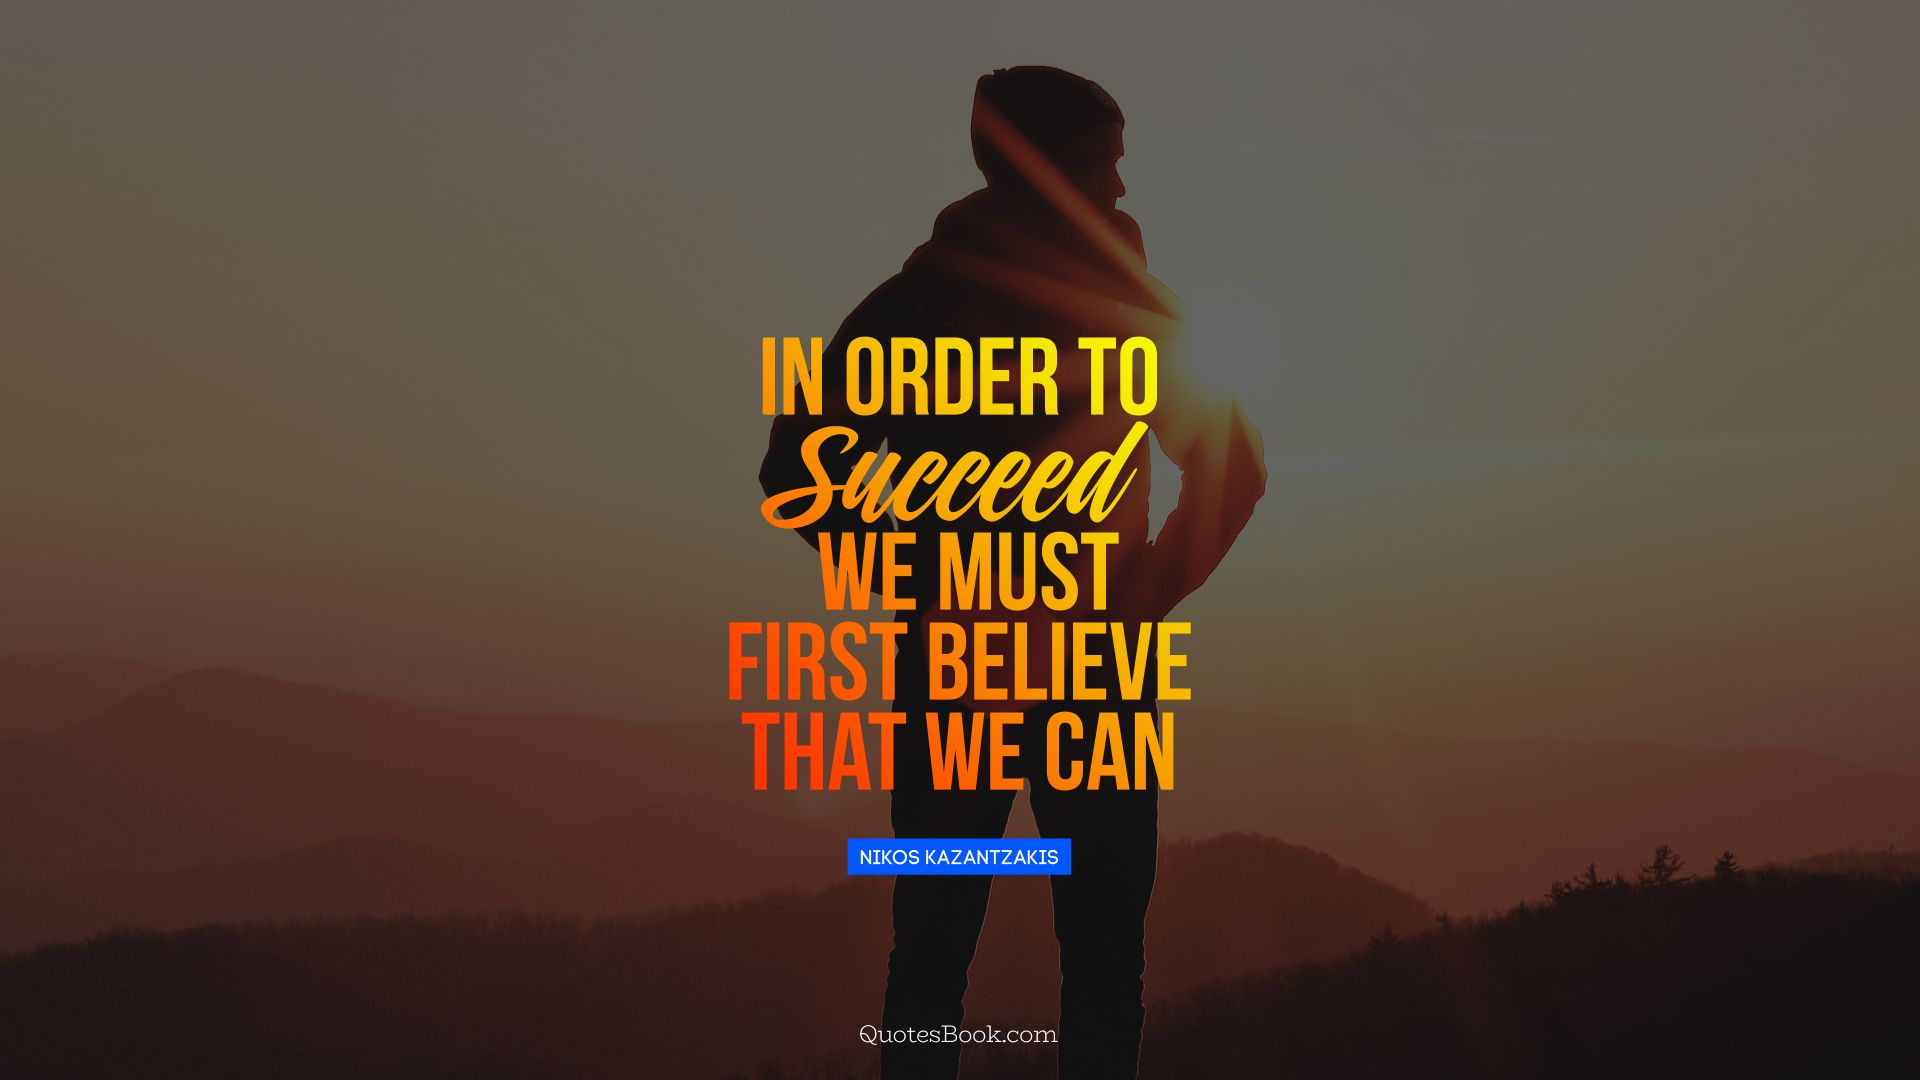 In order to succeed, we must first believe that we can. - Quote by Nikos Kazantzakis